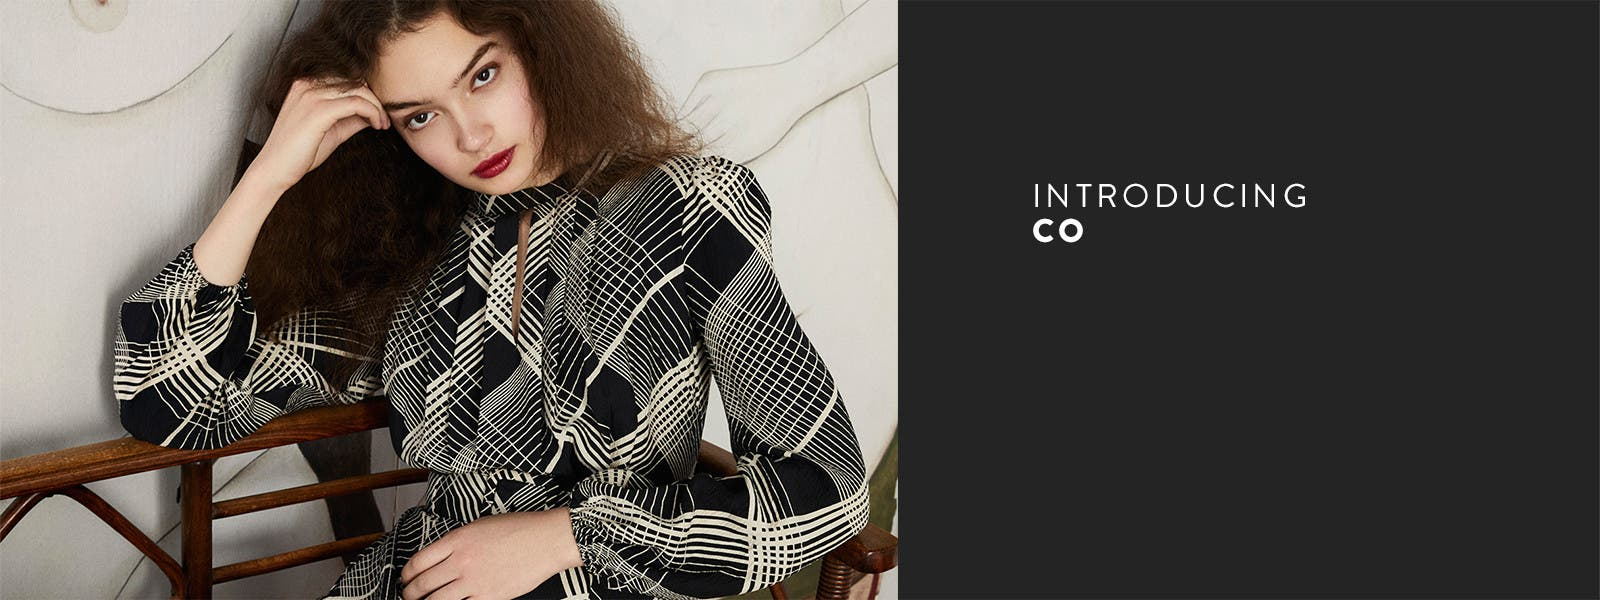 Introducing Co: women's designer clothing.